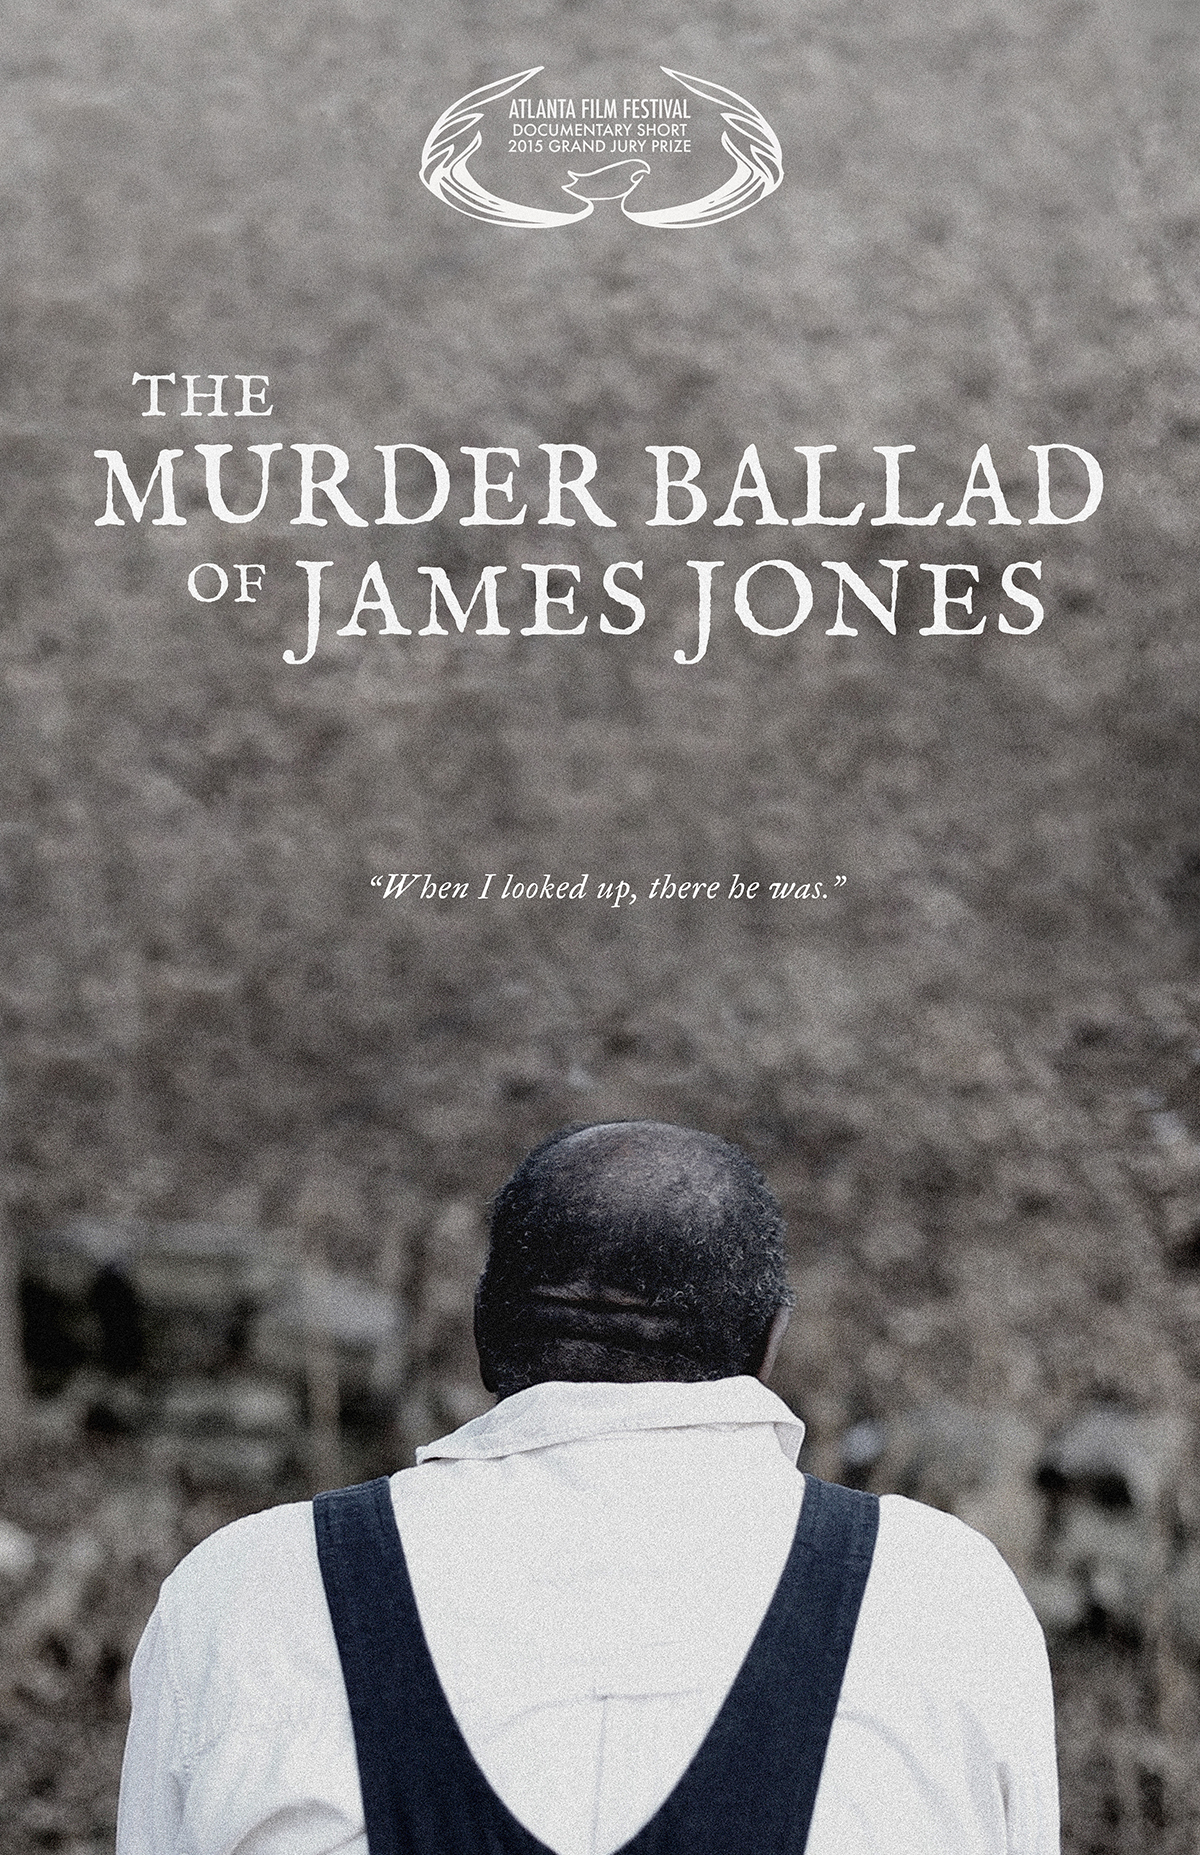 The Murder Ballad of James Jones - Poster